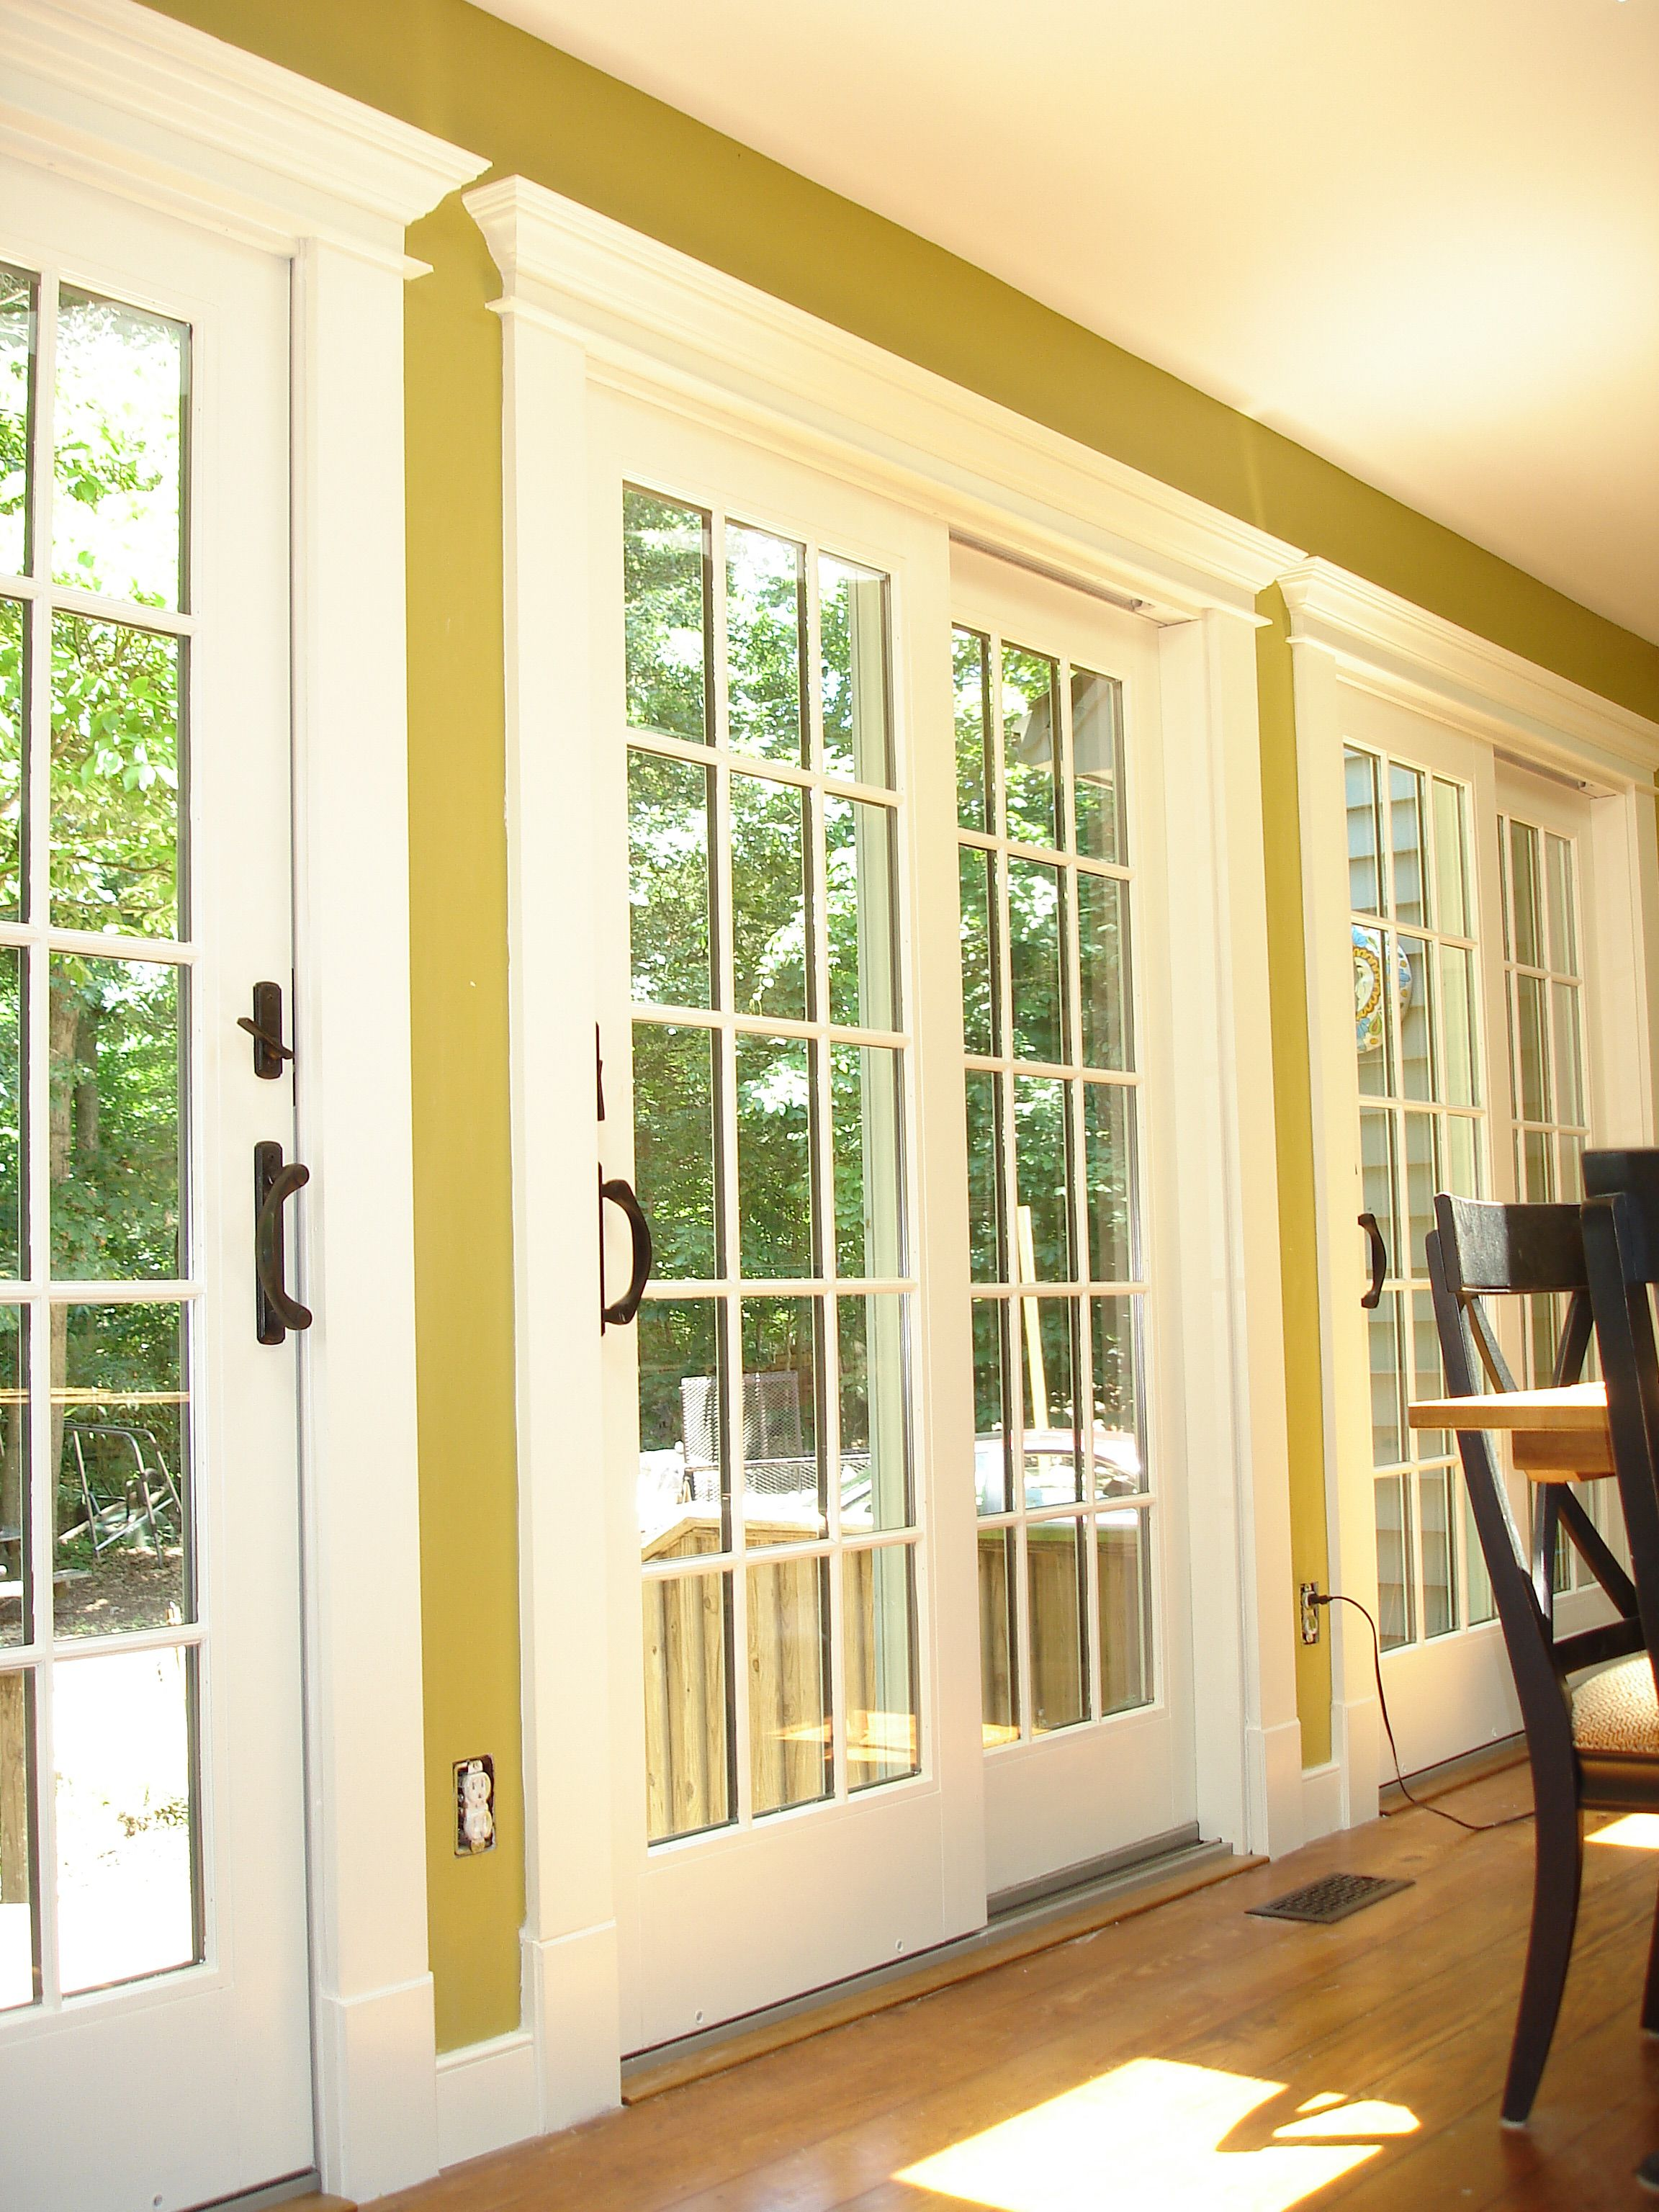 Sliding french doors price - These Are The Anderson 400 Series Sliding Patio Doors With Custom Trim Casing We Replaced